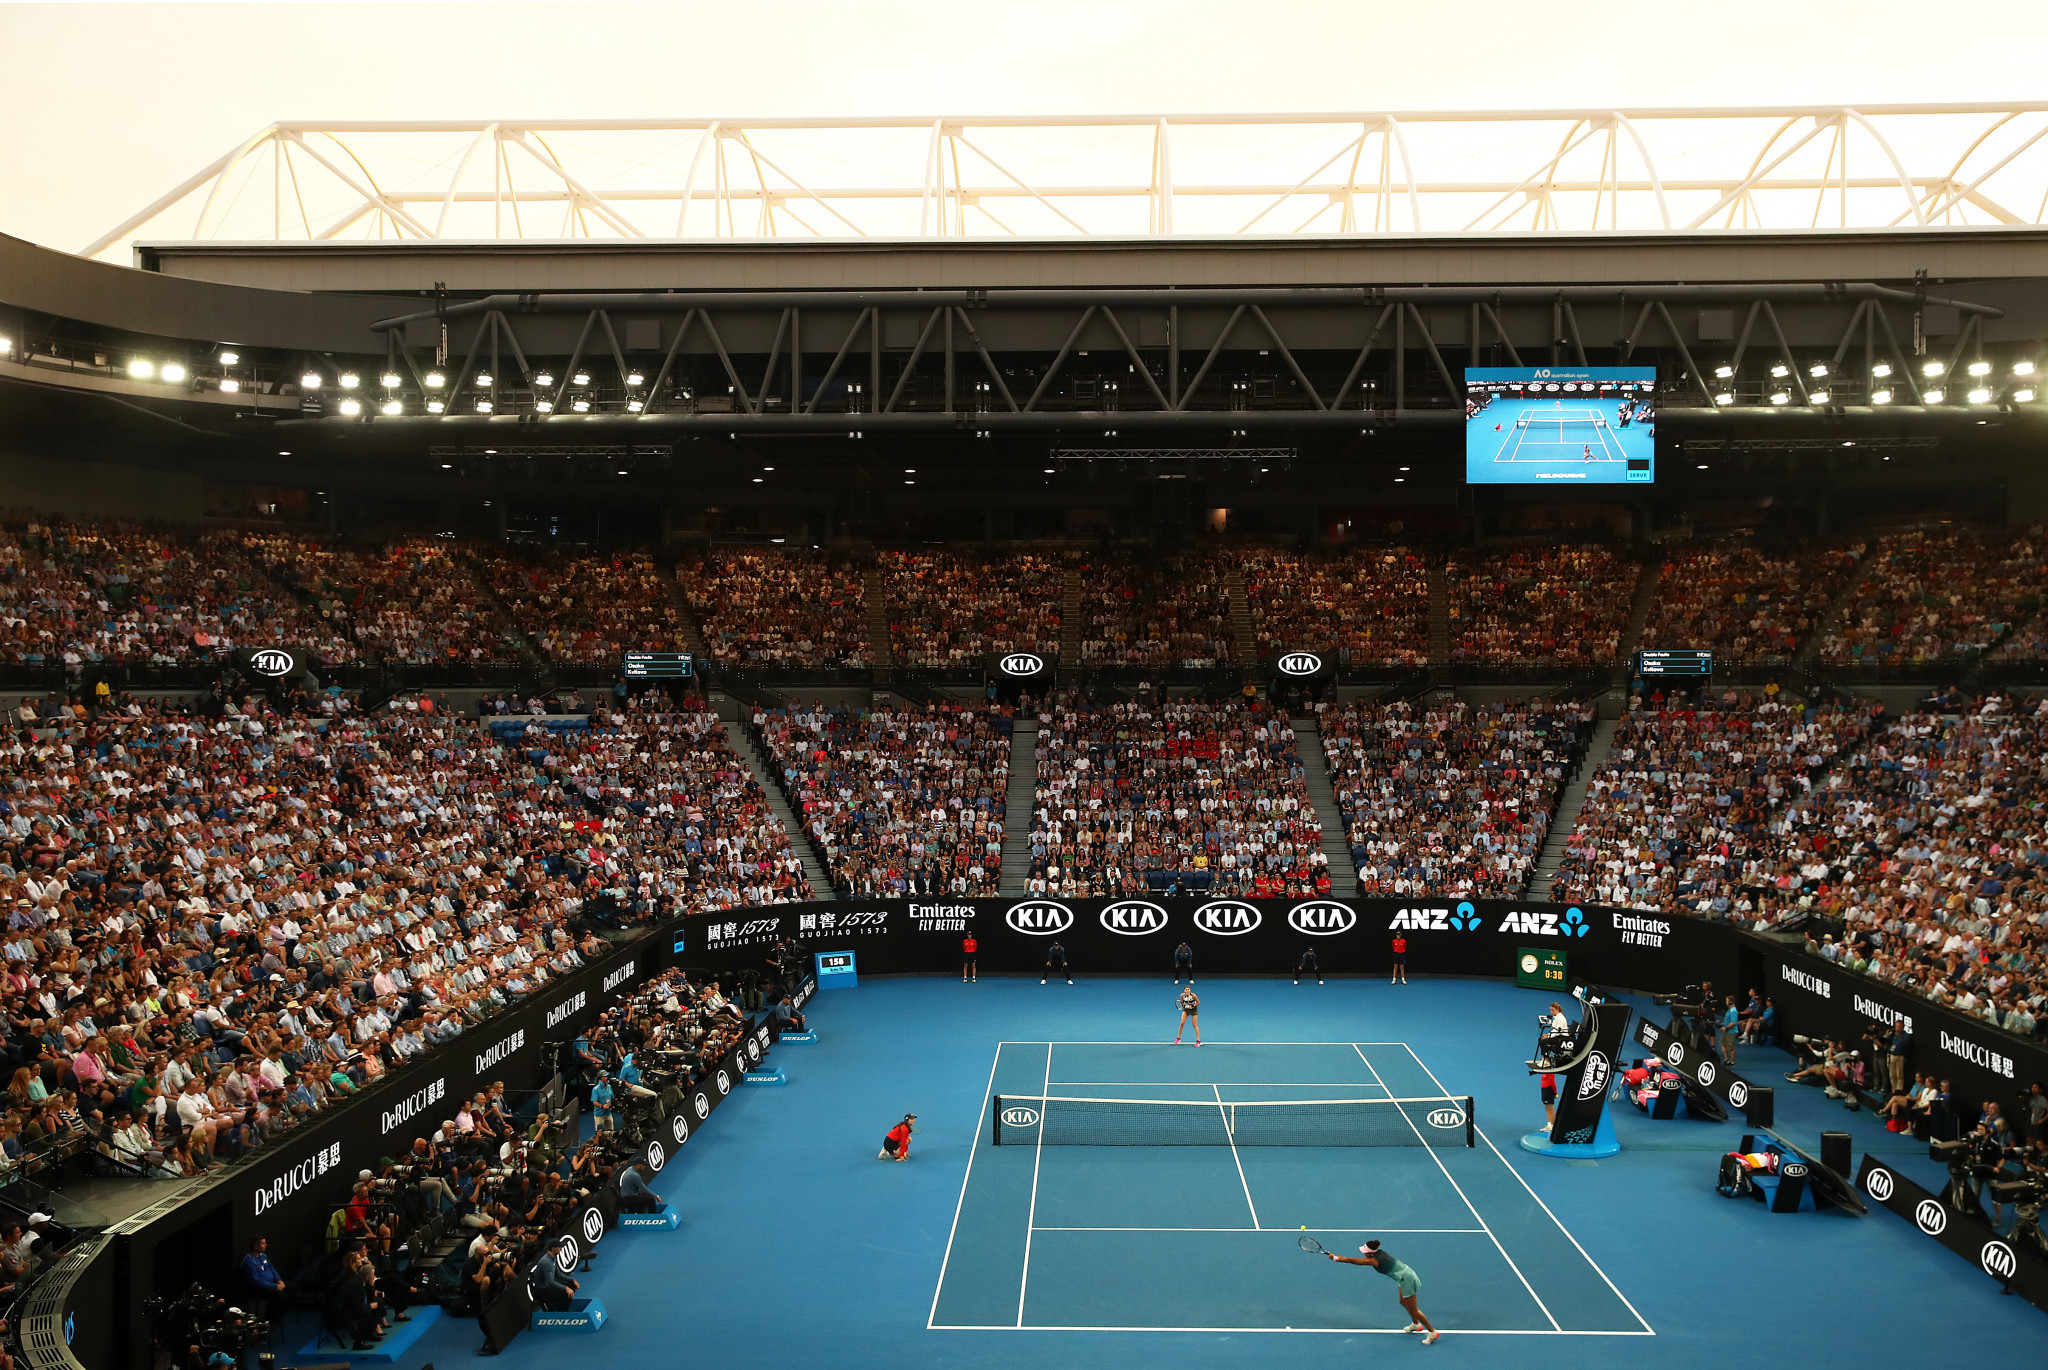 Next year's Australian Open will reportedly take place from February 8 to 21 ©Getty Images